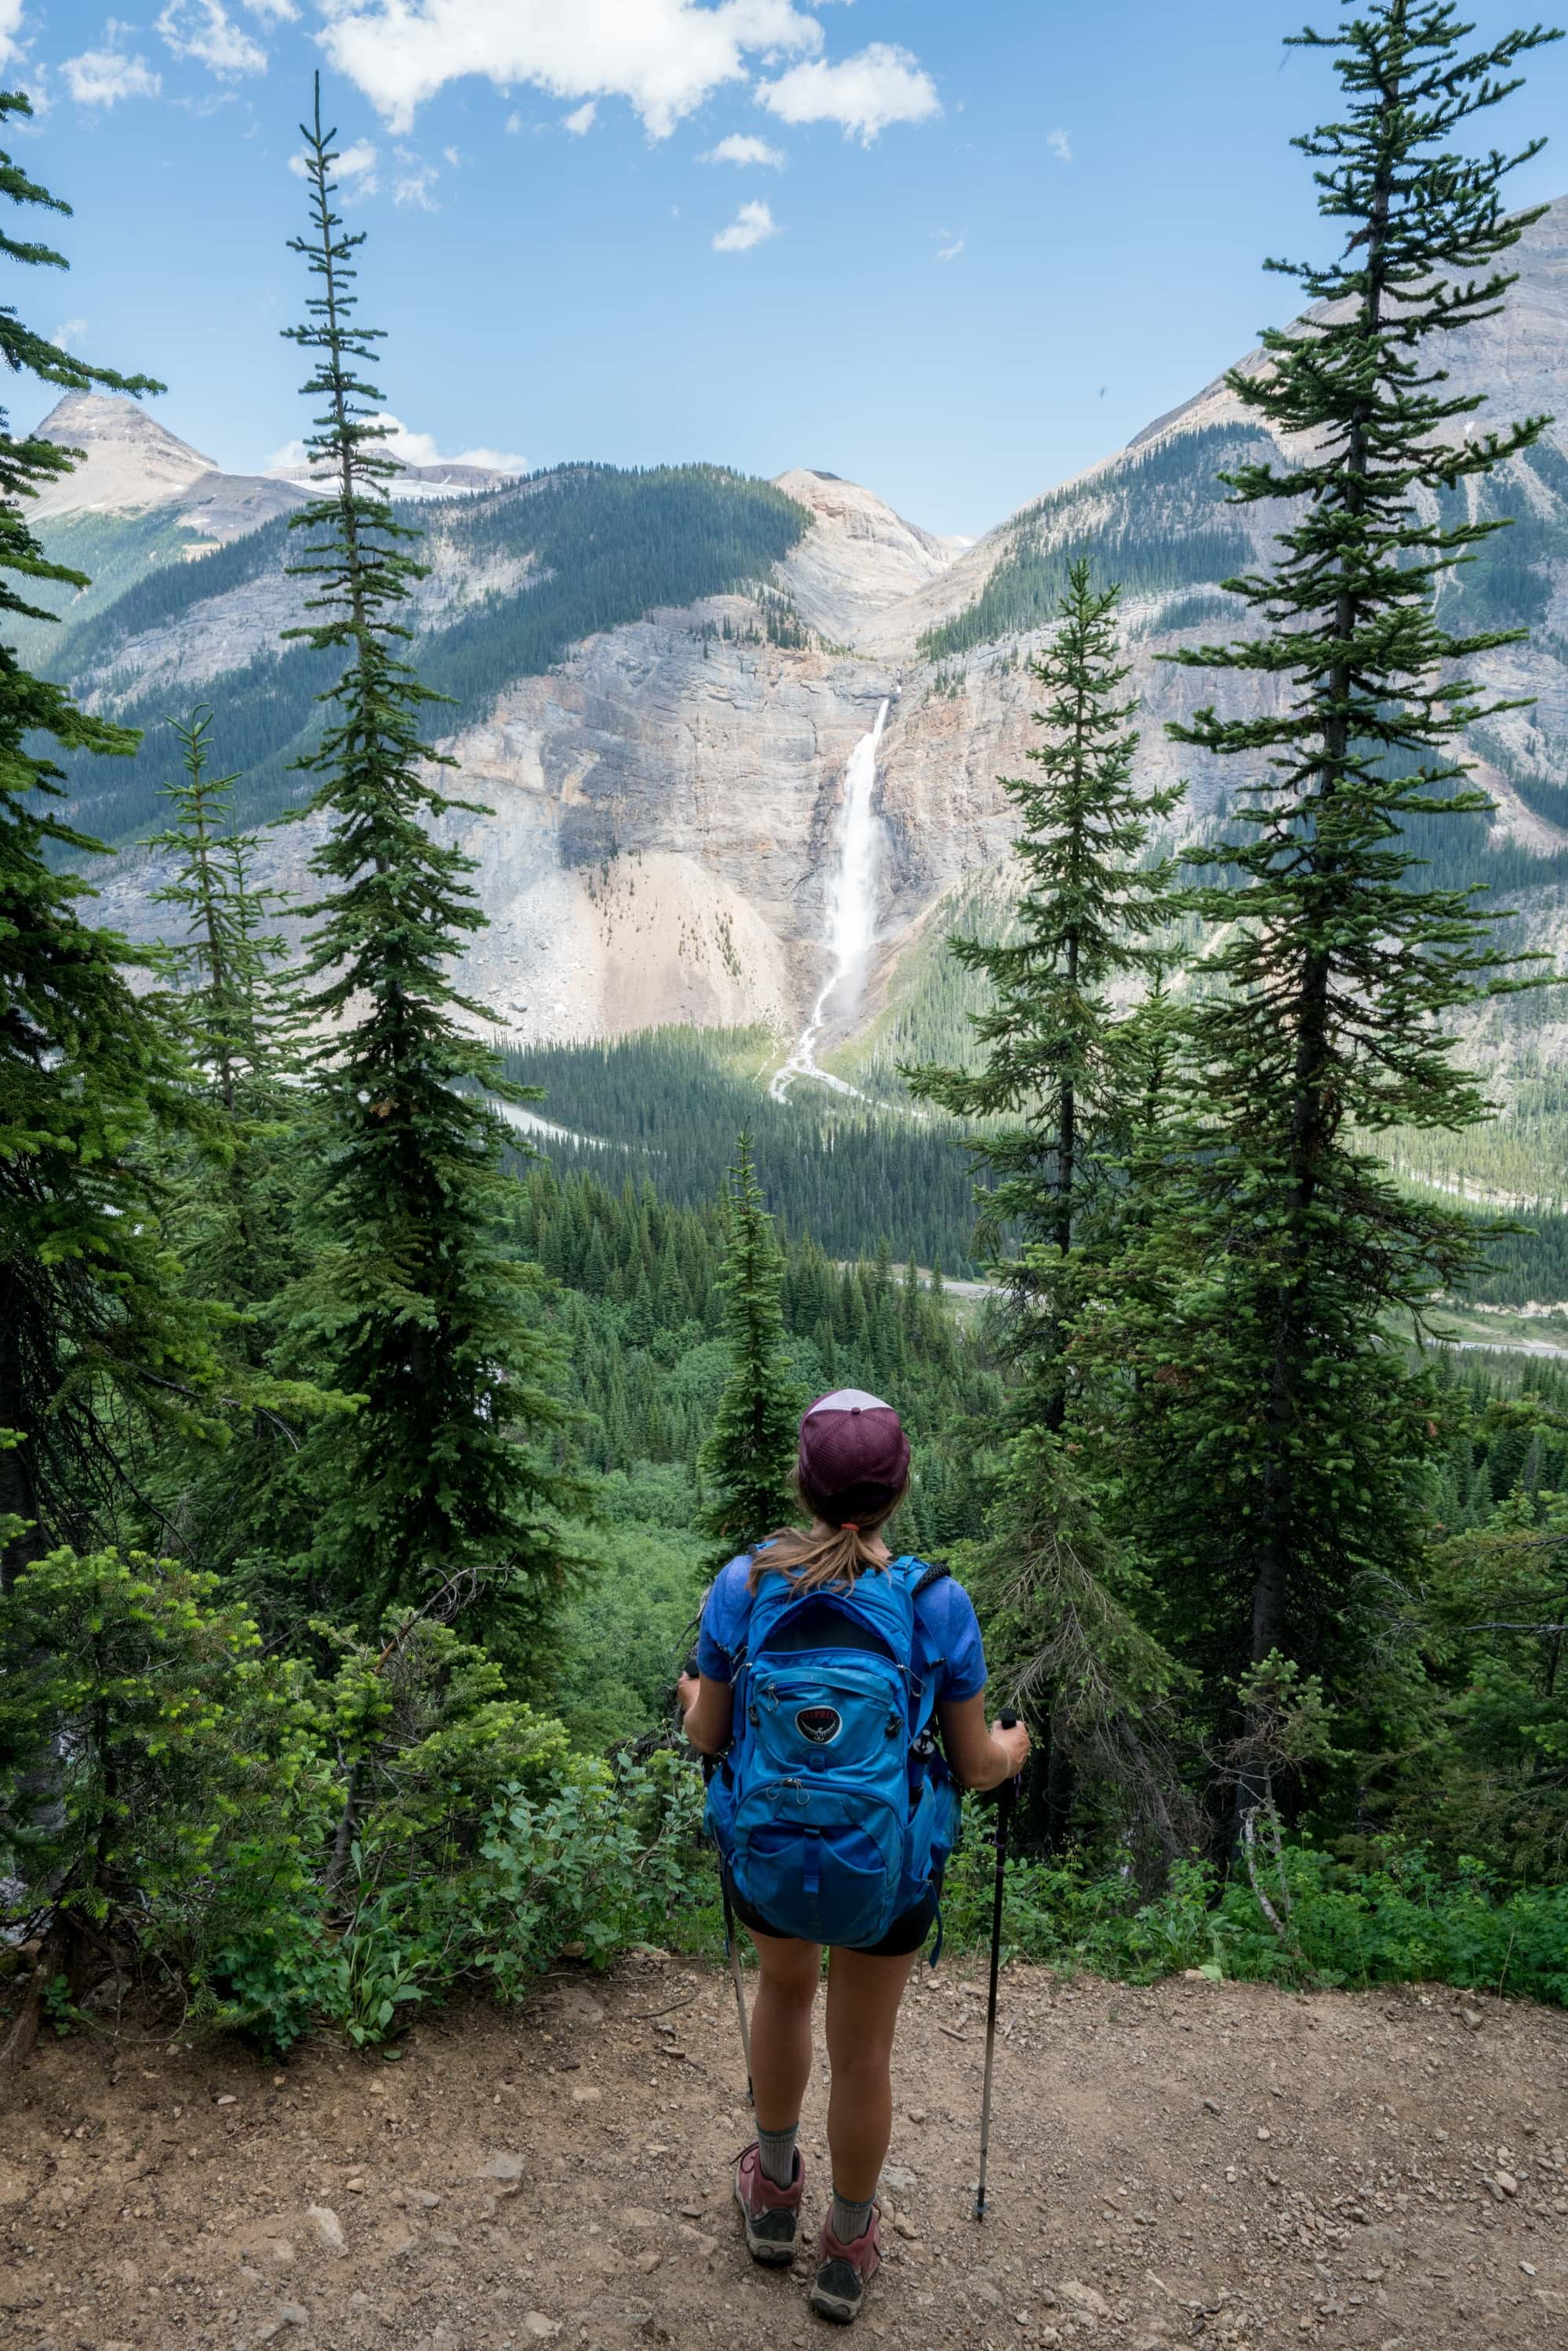 Headed out on a hike? Make sure you pack these top day hiking essentials to ensure you have fun and stay safe out on the trail.